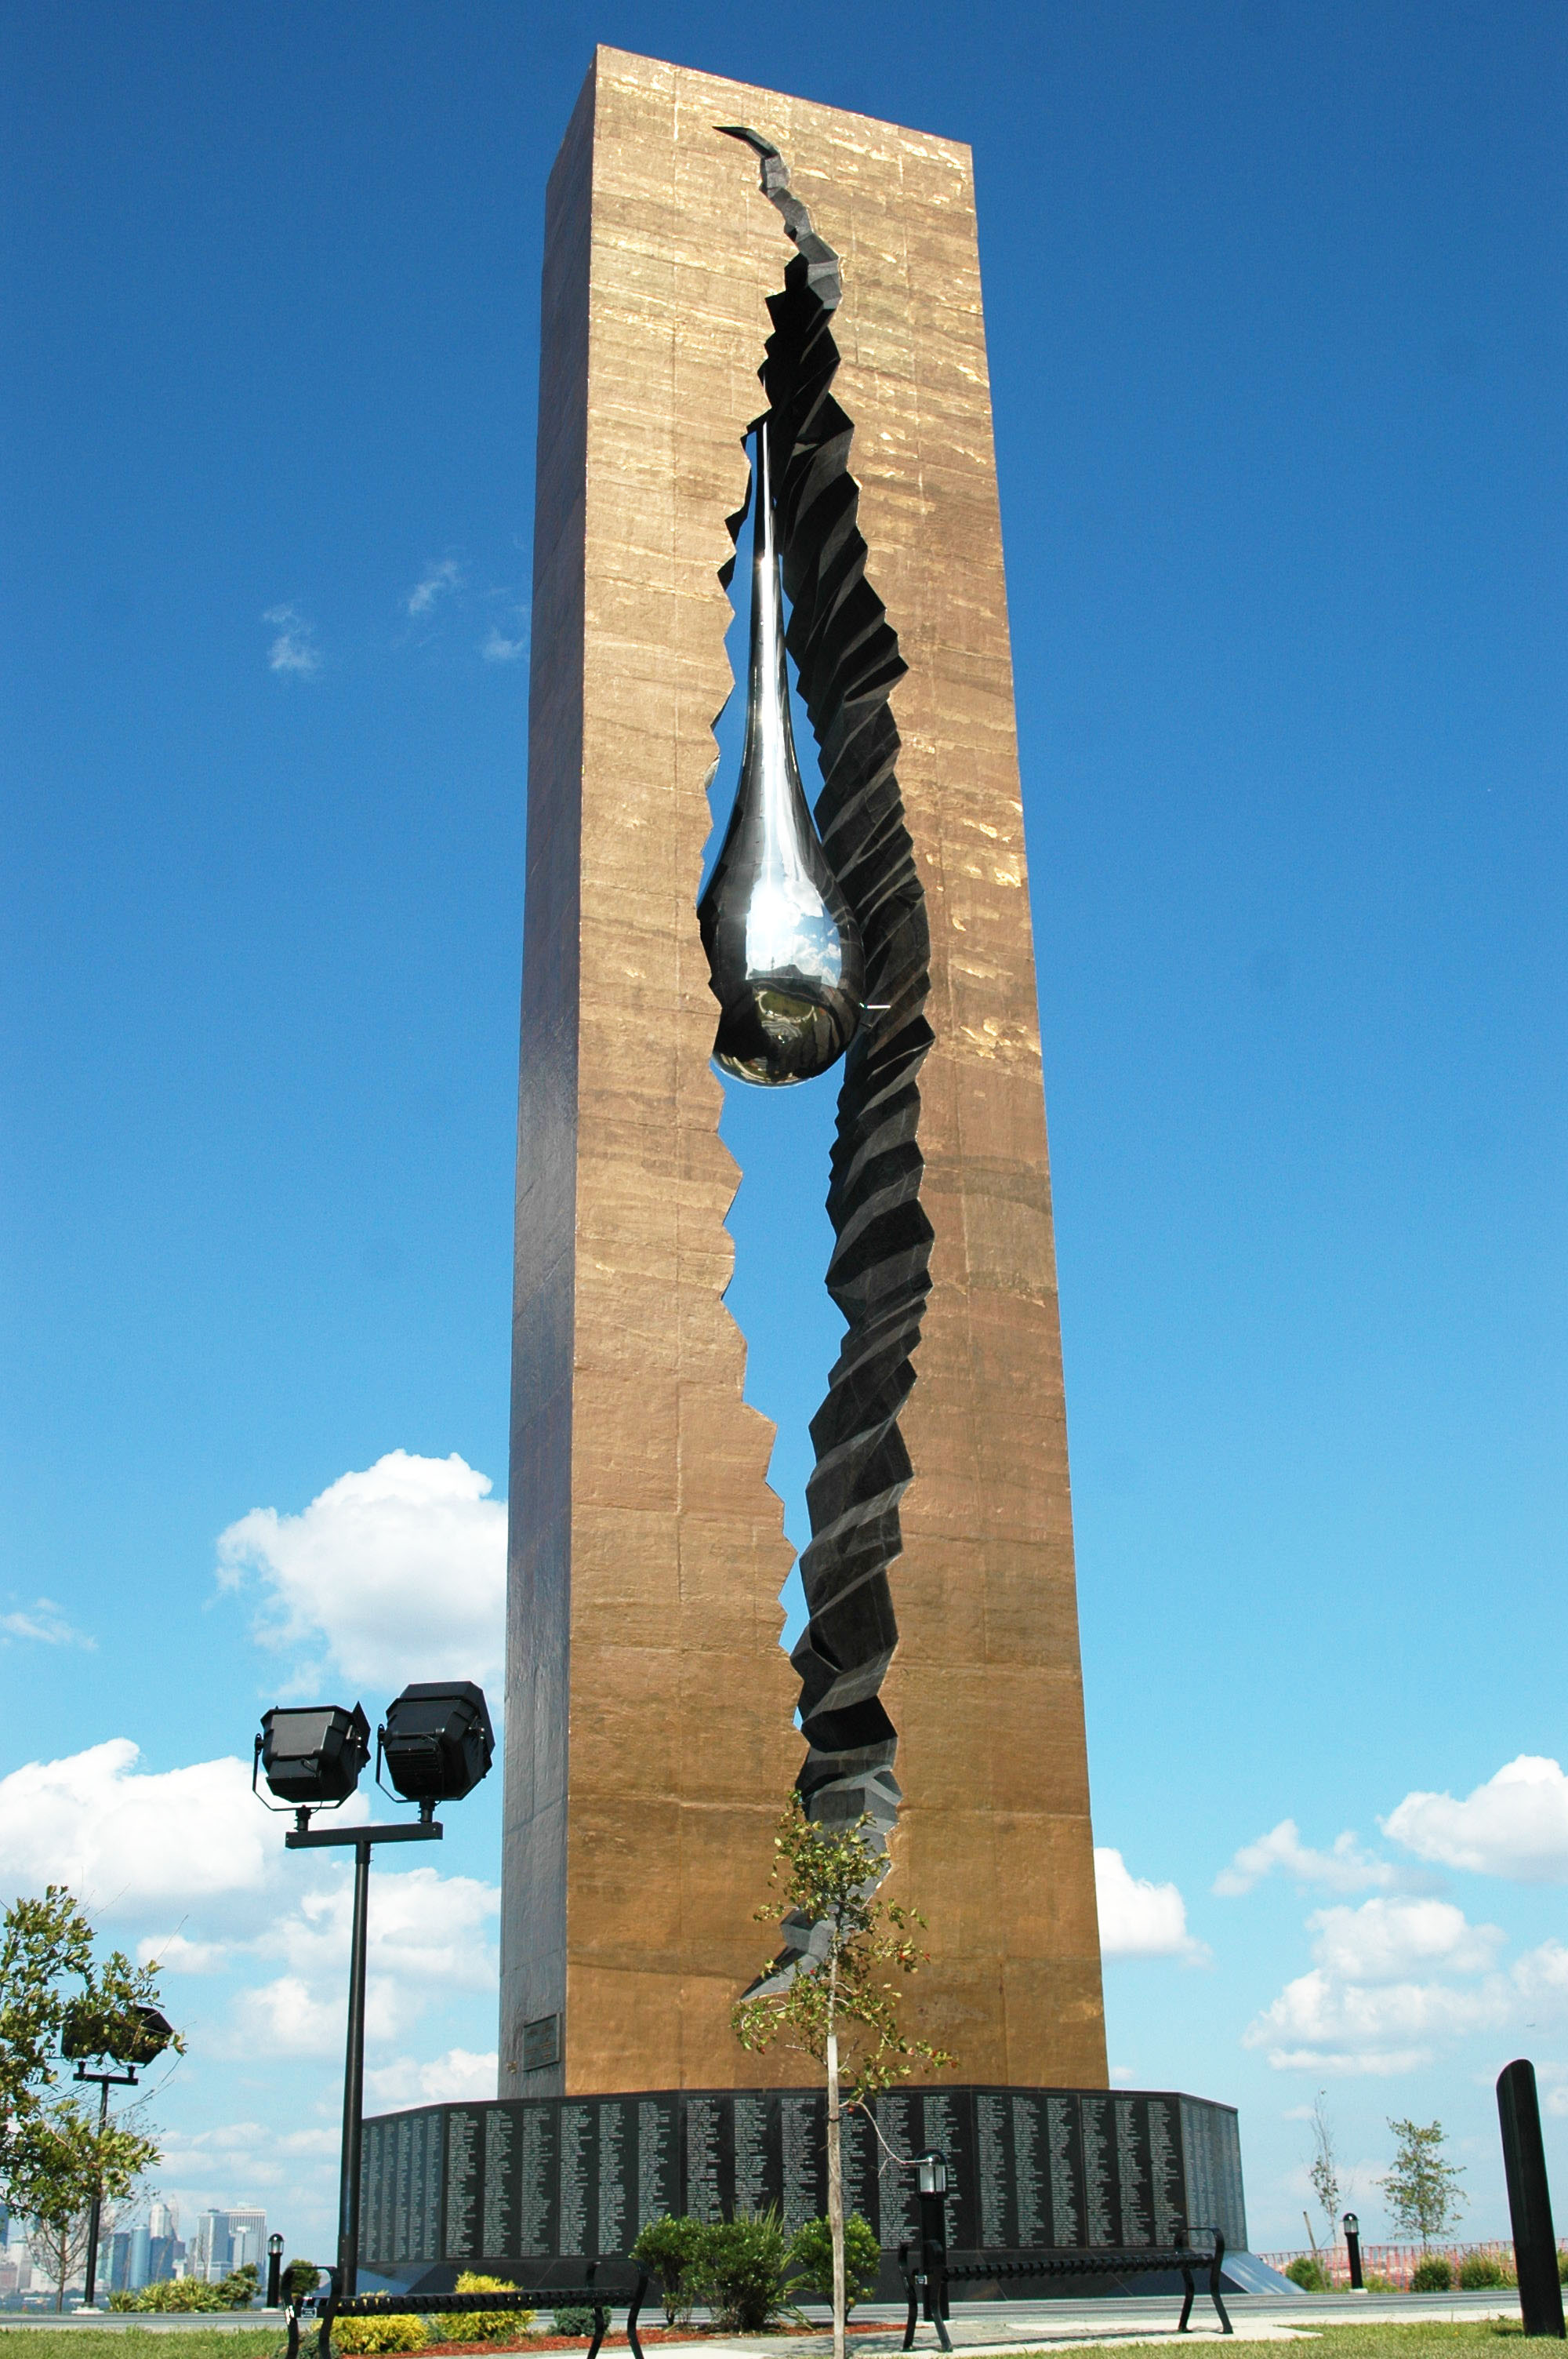 the teardrop monument a 10 story high sculpture given to the usa